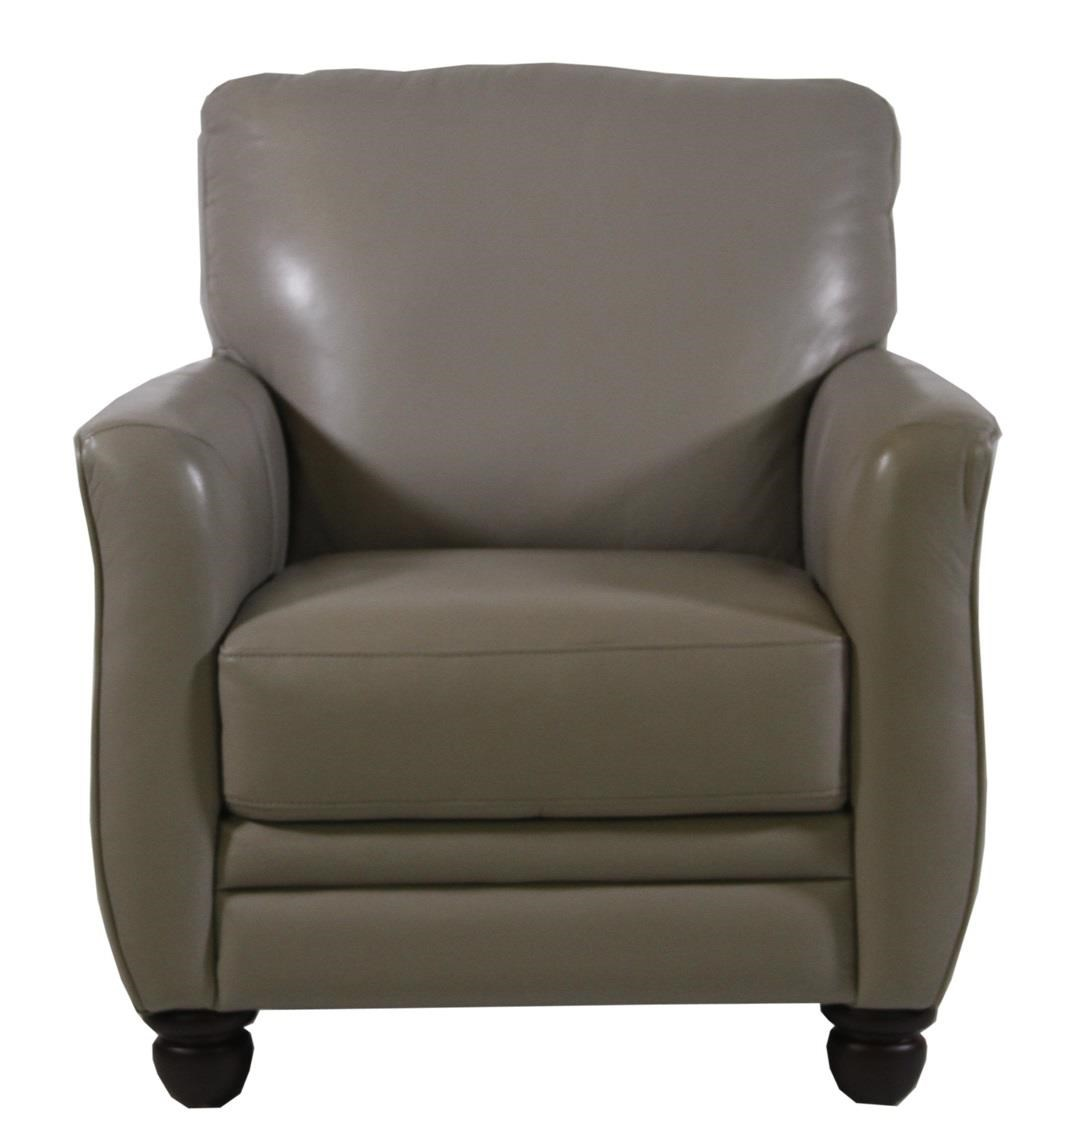 Futura Leather Alana Chair - Item Number: 8585-10